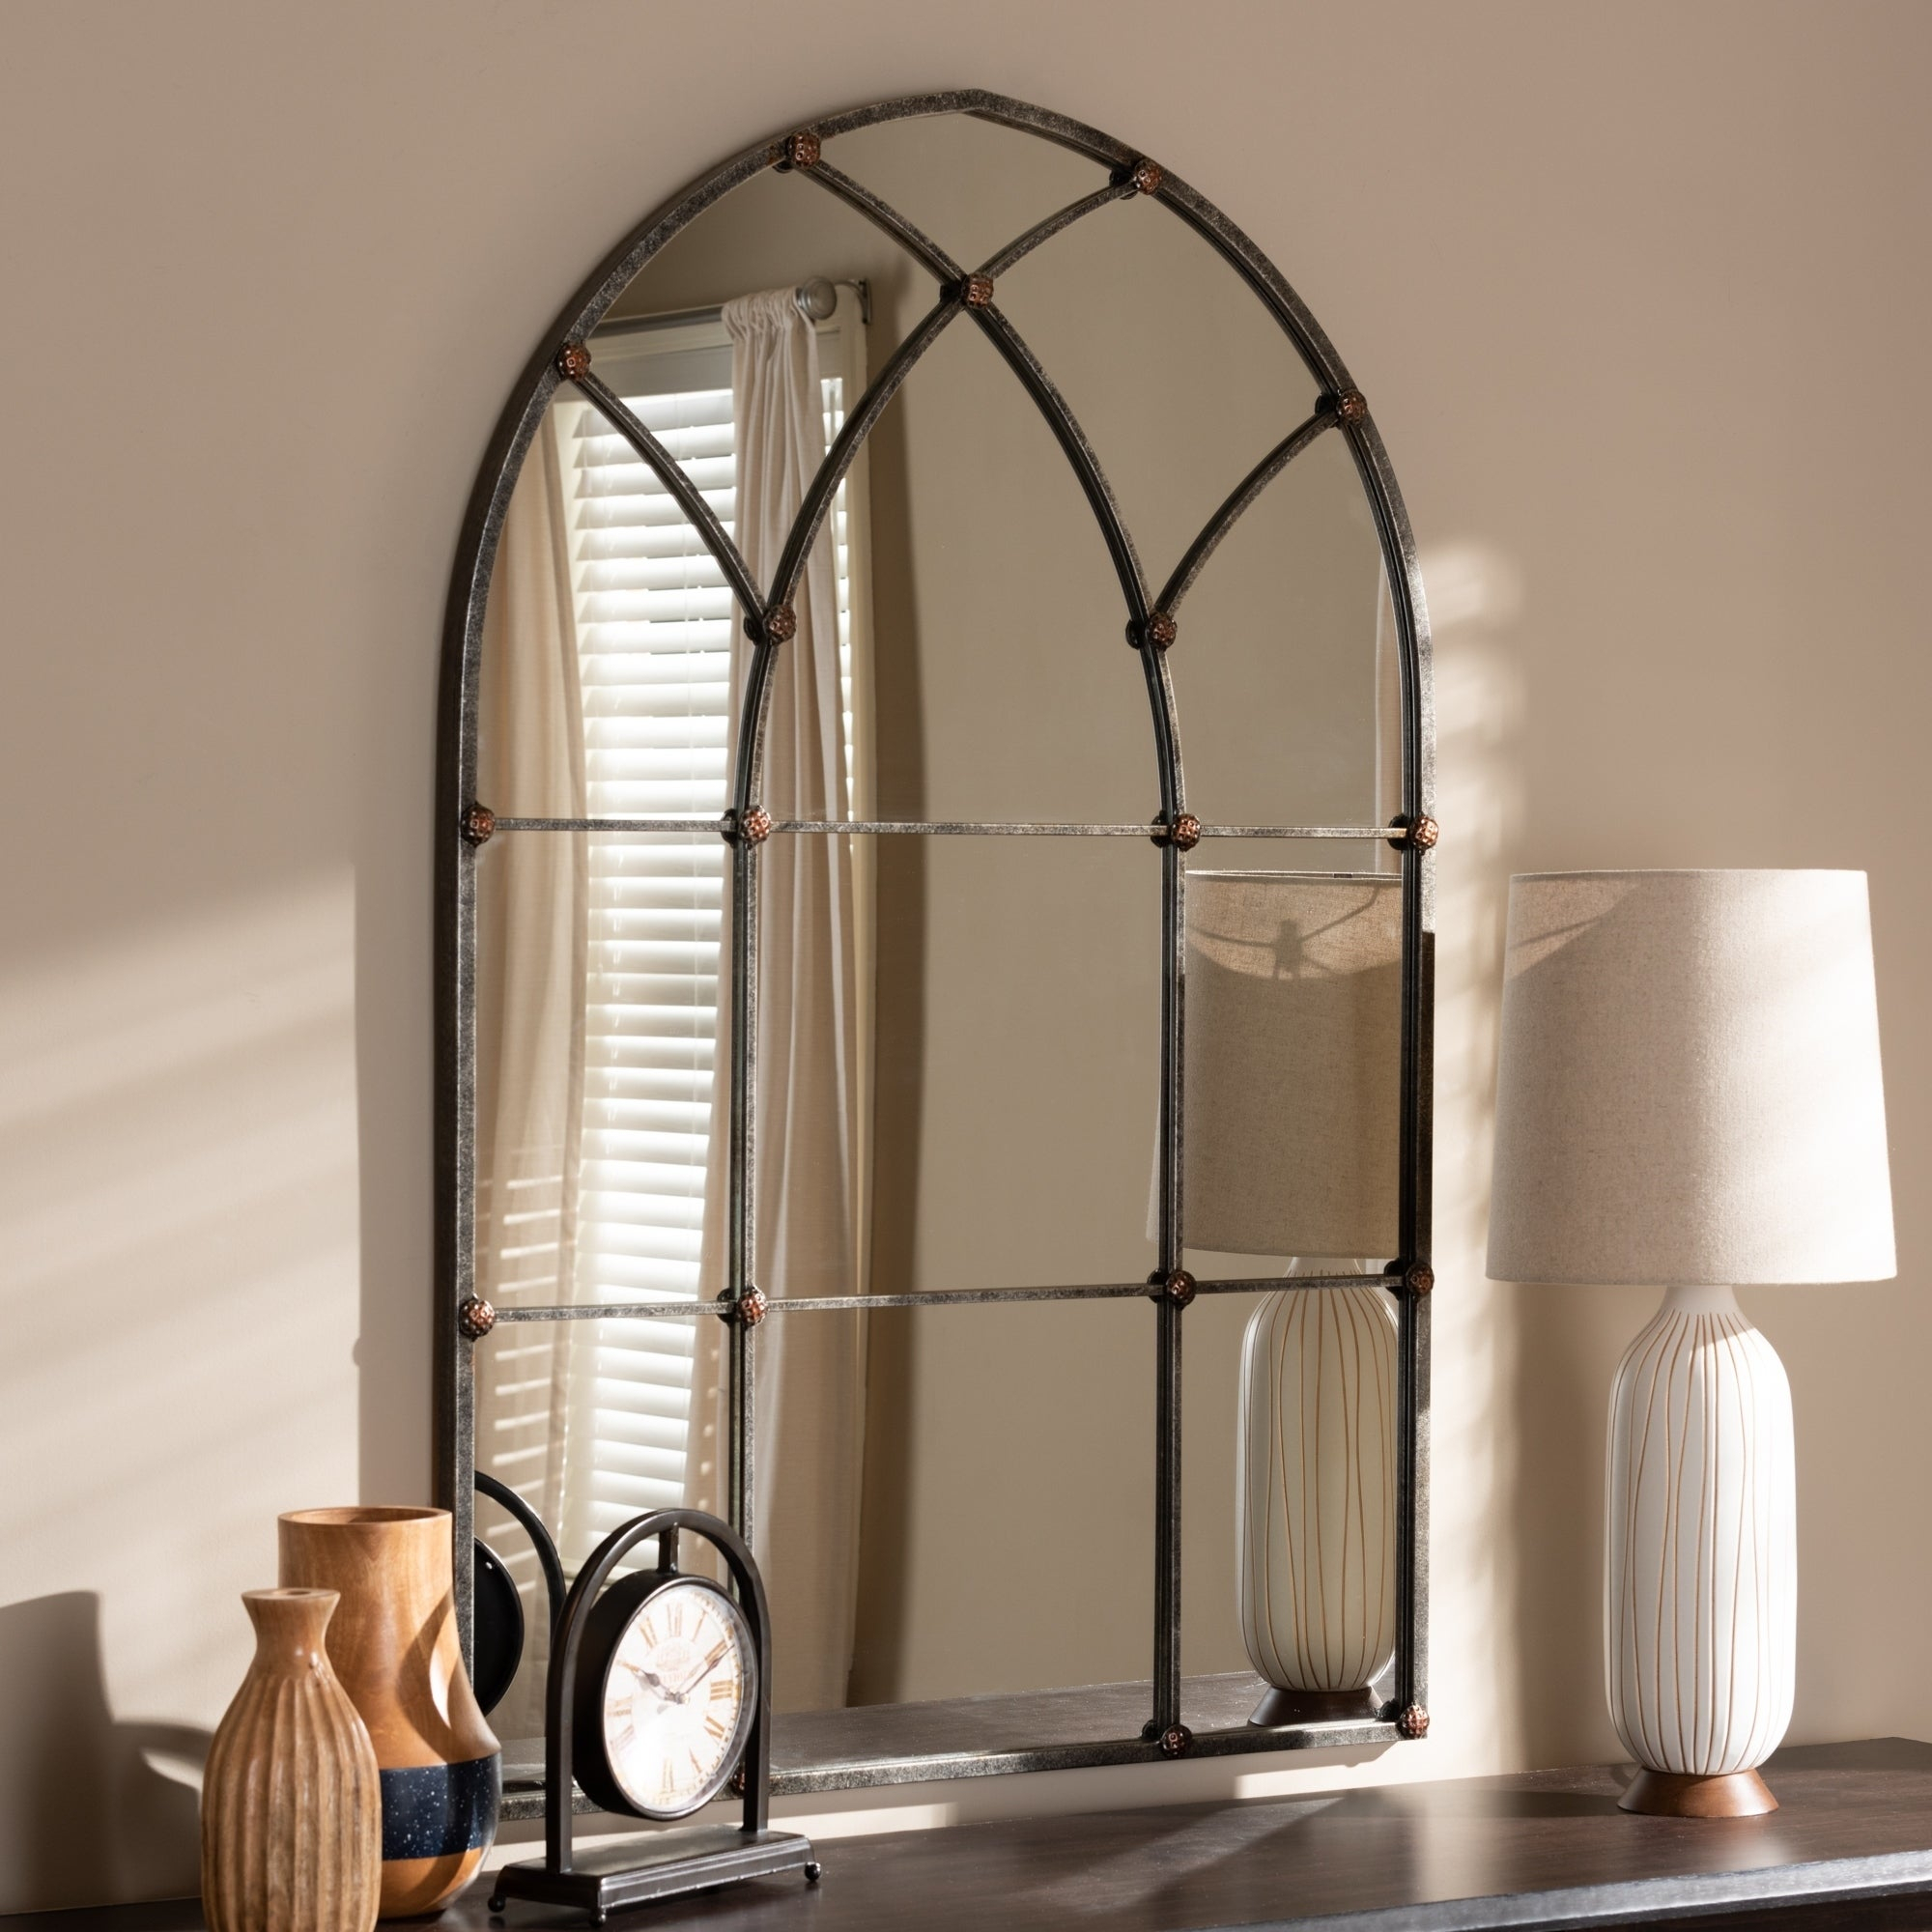 Arch Crowned Top Mirrors | Shop Online At Overstock Inside 2 Piece Kissena Window Pane Accent Mirror Sets (View 19 of 20)